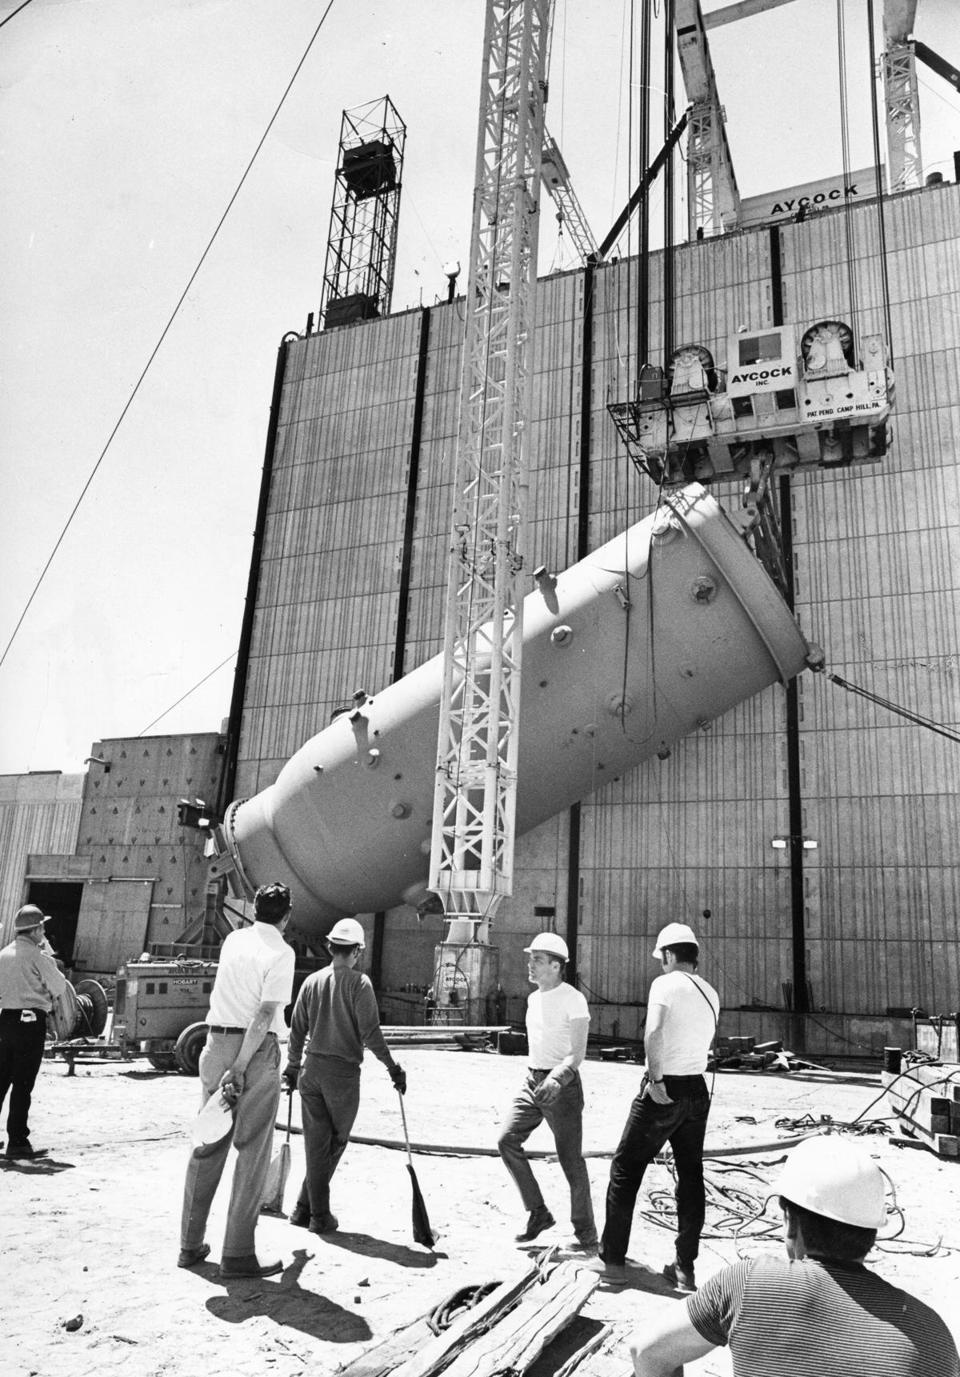 Plymouth, MA - 5/24/1970: The 512-ton nuclear reactor is hoisted up and into Edison's new Pilgrim Nuclear Power Station in Plymouth, Mass., May 24, 1970. (Bill Ryerson/Globe Staff) --- BGPA Reference: 151013_EF_001